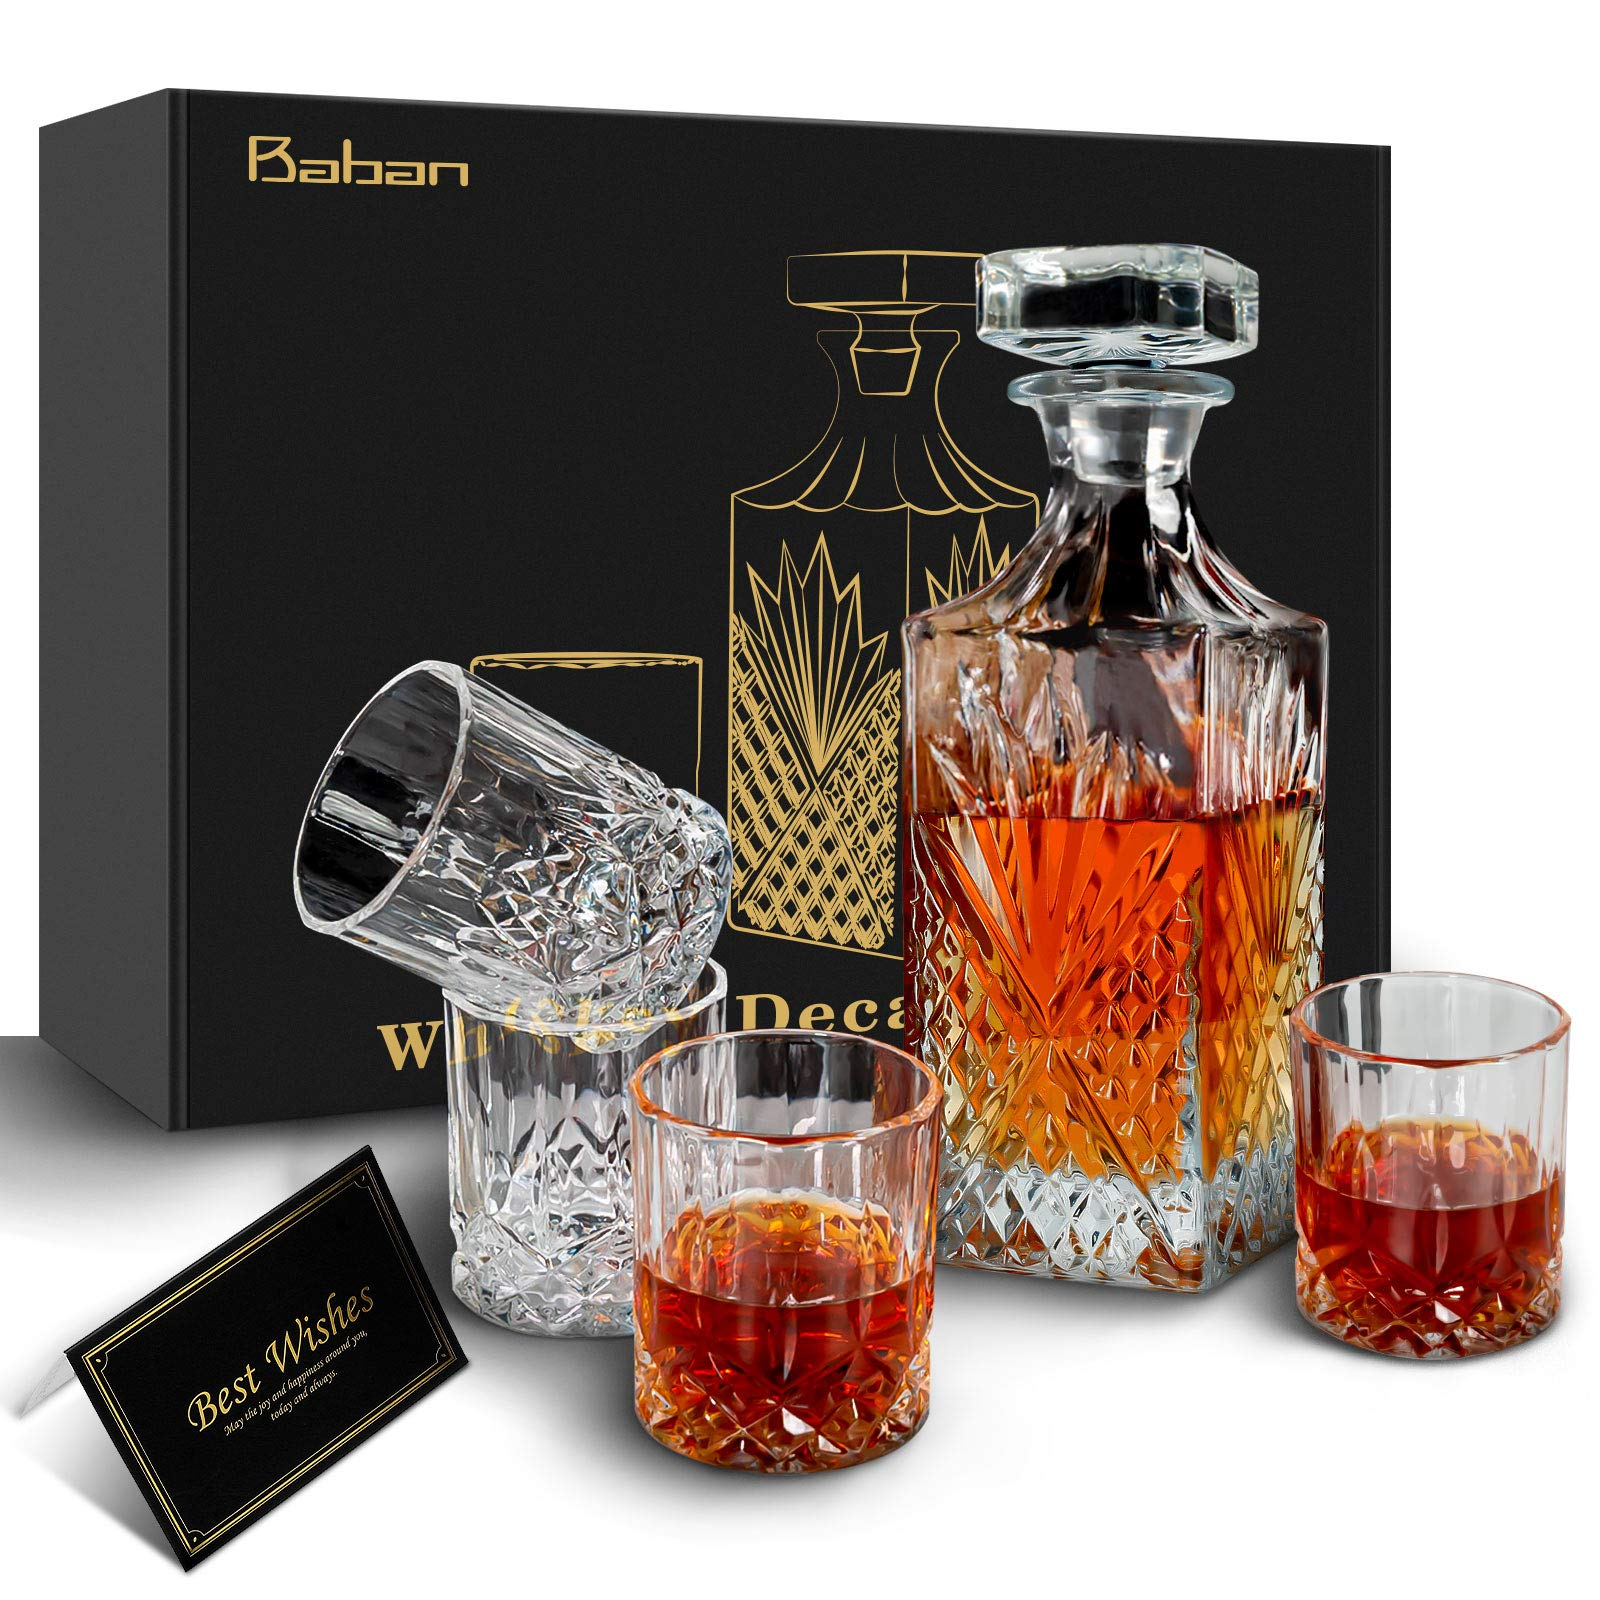 Whiskey Decanter Sets- Baban Whiskey Glass Gift Box Set 750ml Bottle and 4x310ml Whiskey Glass Elegant Decoration, Gifts for Whiskey Lovers Father Husband Boyfriend,Valentine's Day